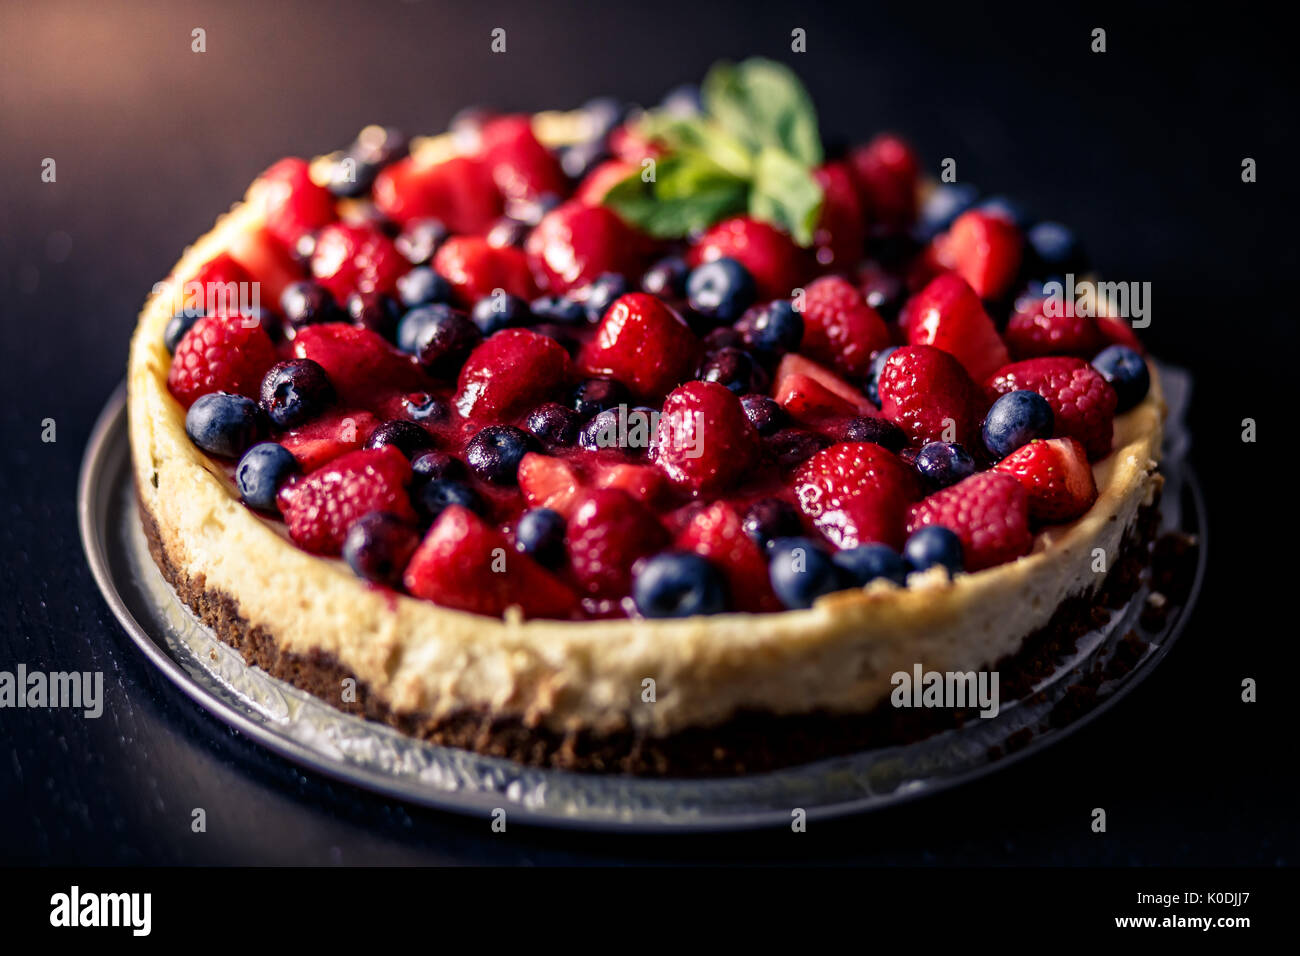 Red fruits cheesecake - Stock Image